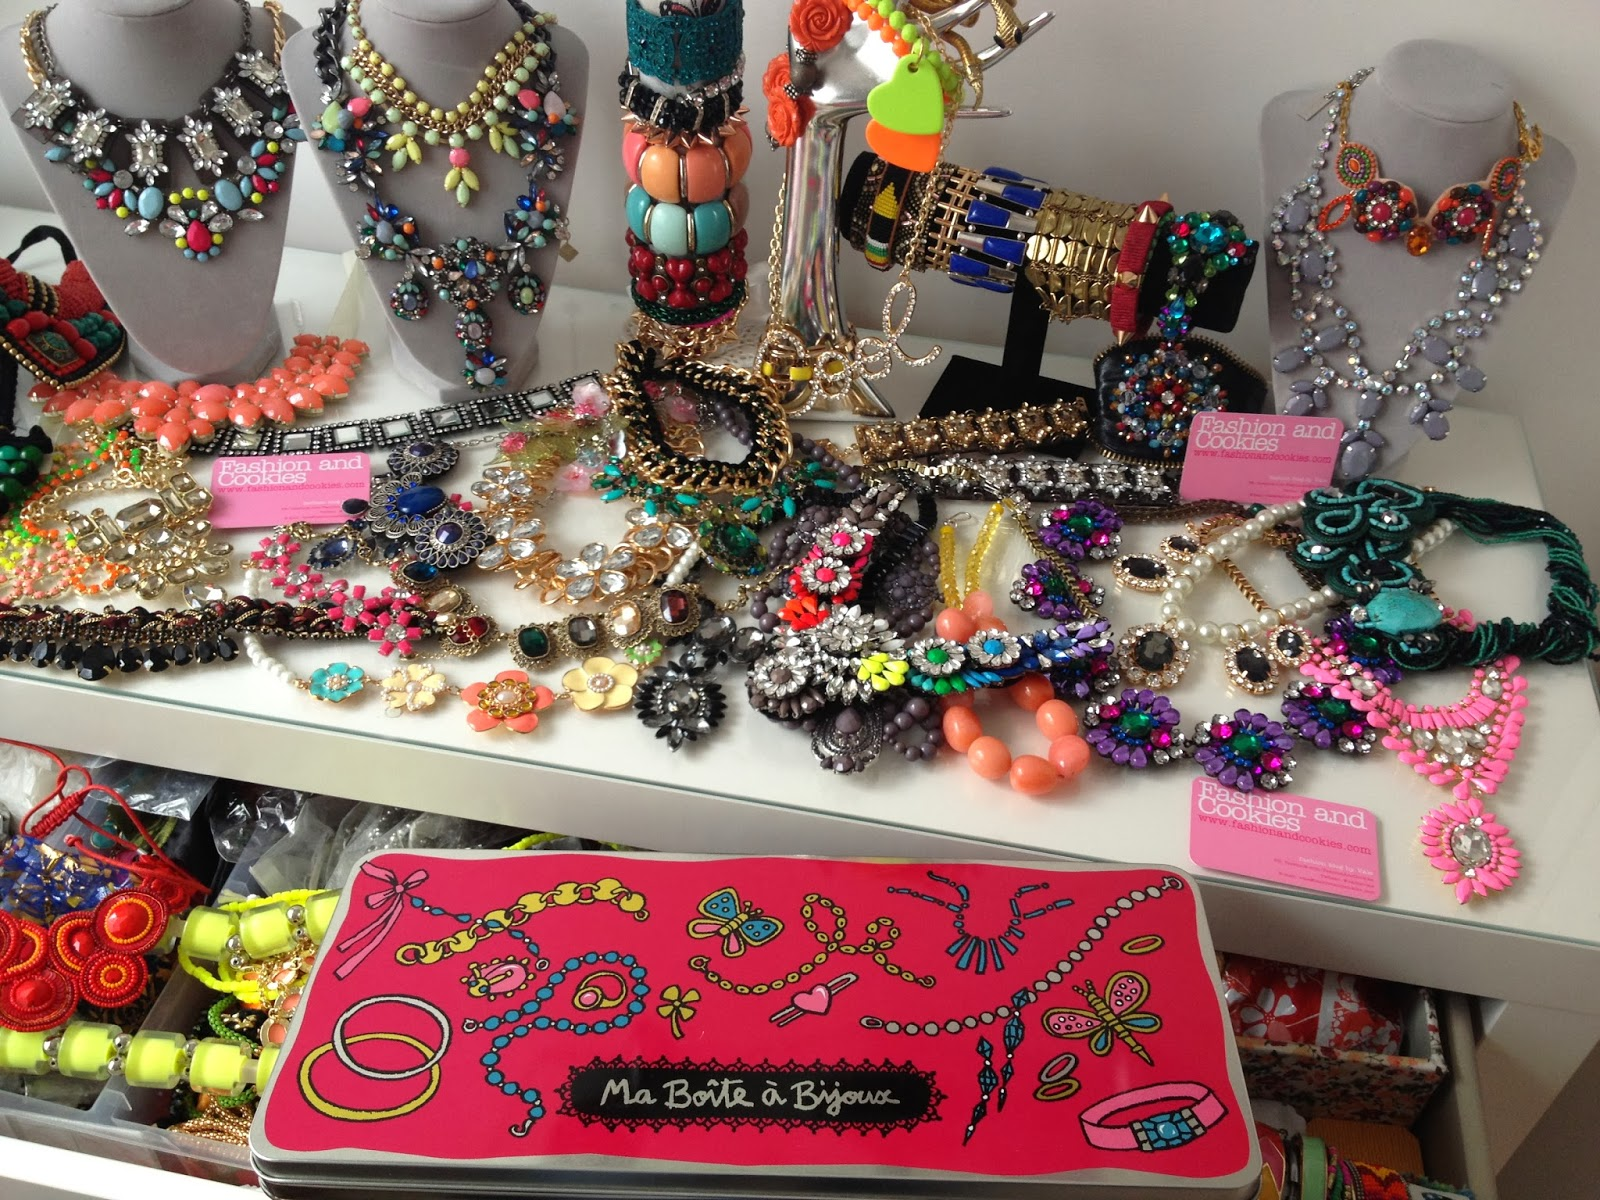 statement necklaces, dlp-paris boite a bijoux, Fashion and Cookies, fashion blogger